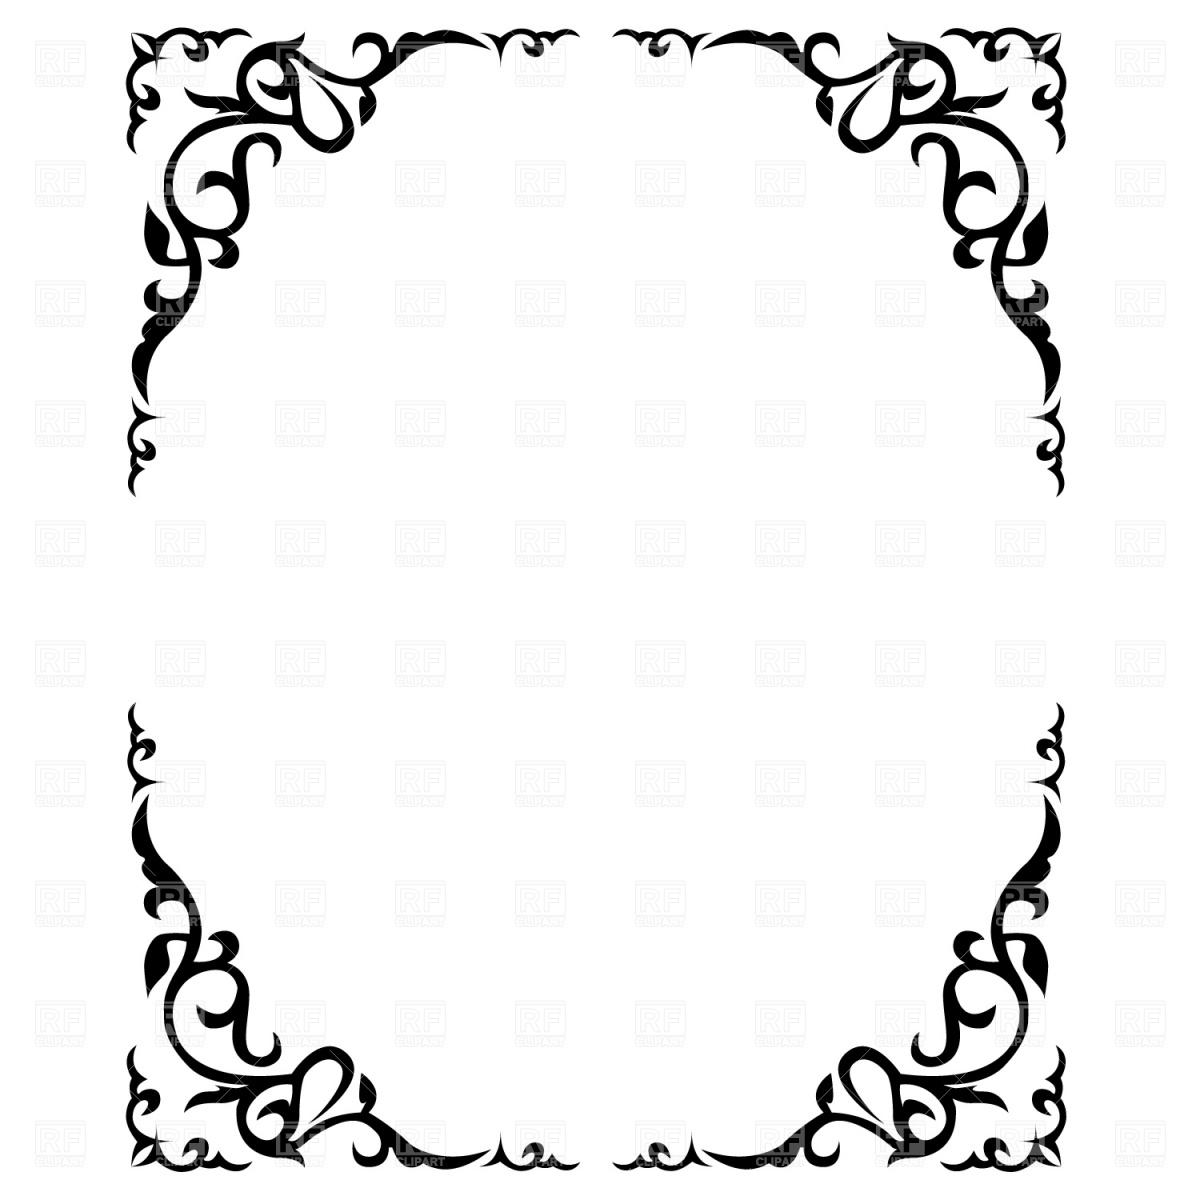 Invitation Borders Cliparts furthermore Edittemplate besides Free Border Templates For Word as well Free Wedding Monogram Design Templates likewise Photo Frame Vector Eps. on free invitation templates wedding